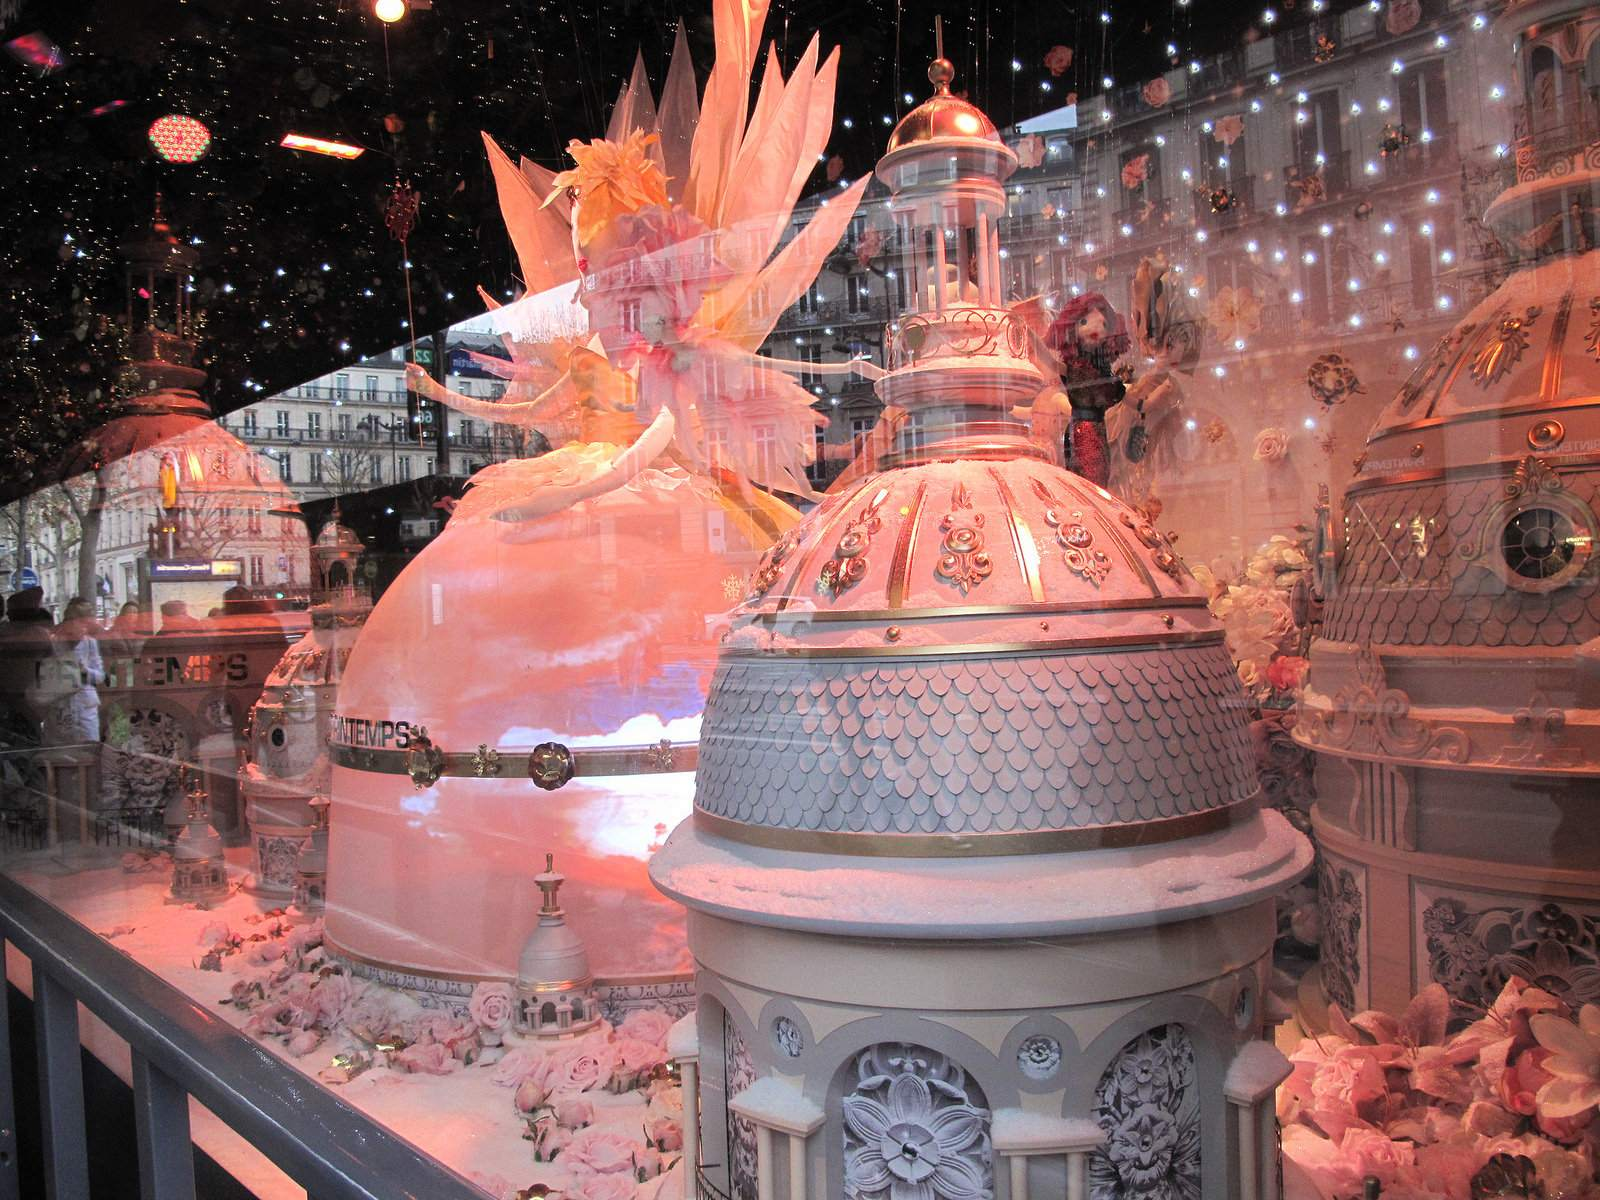 vitrines noel9 Christmas window displays in Paris